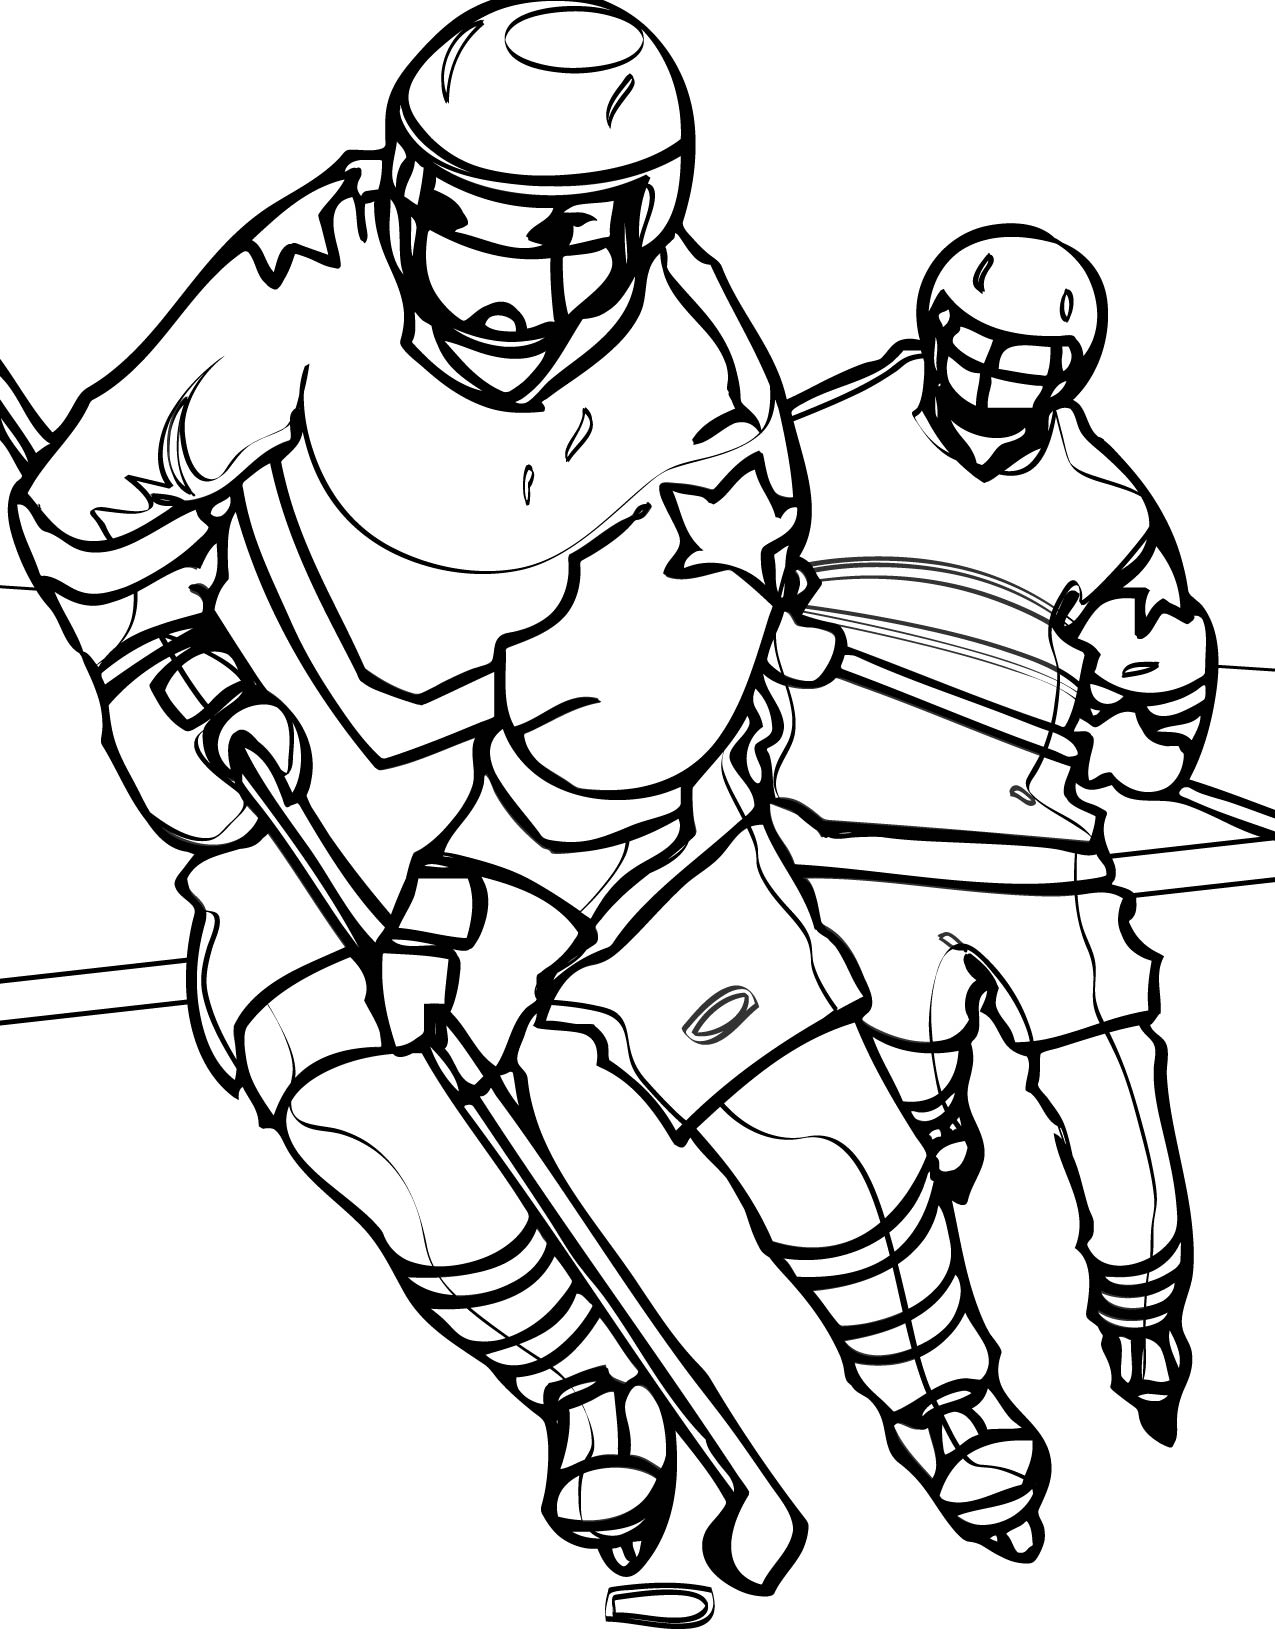 Sports Drawing at GetDrawings.com | Free for personal use Sports ...